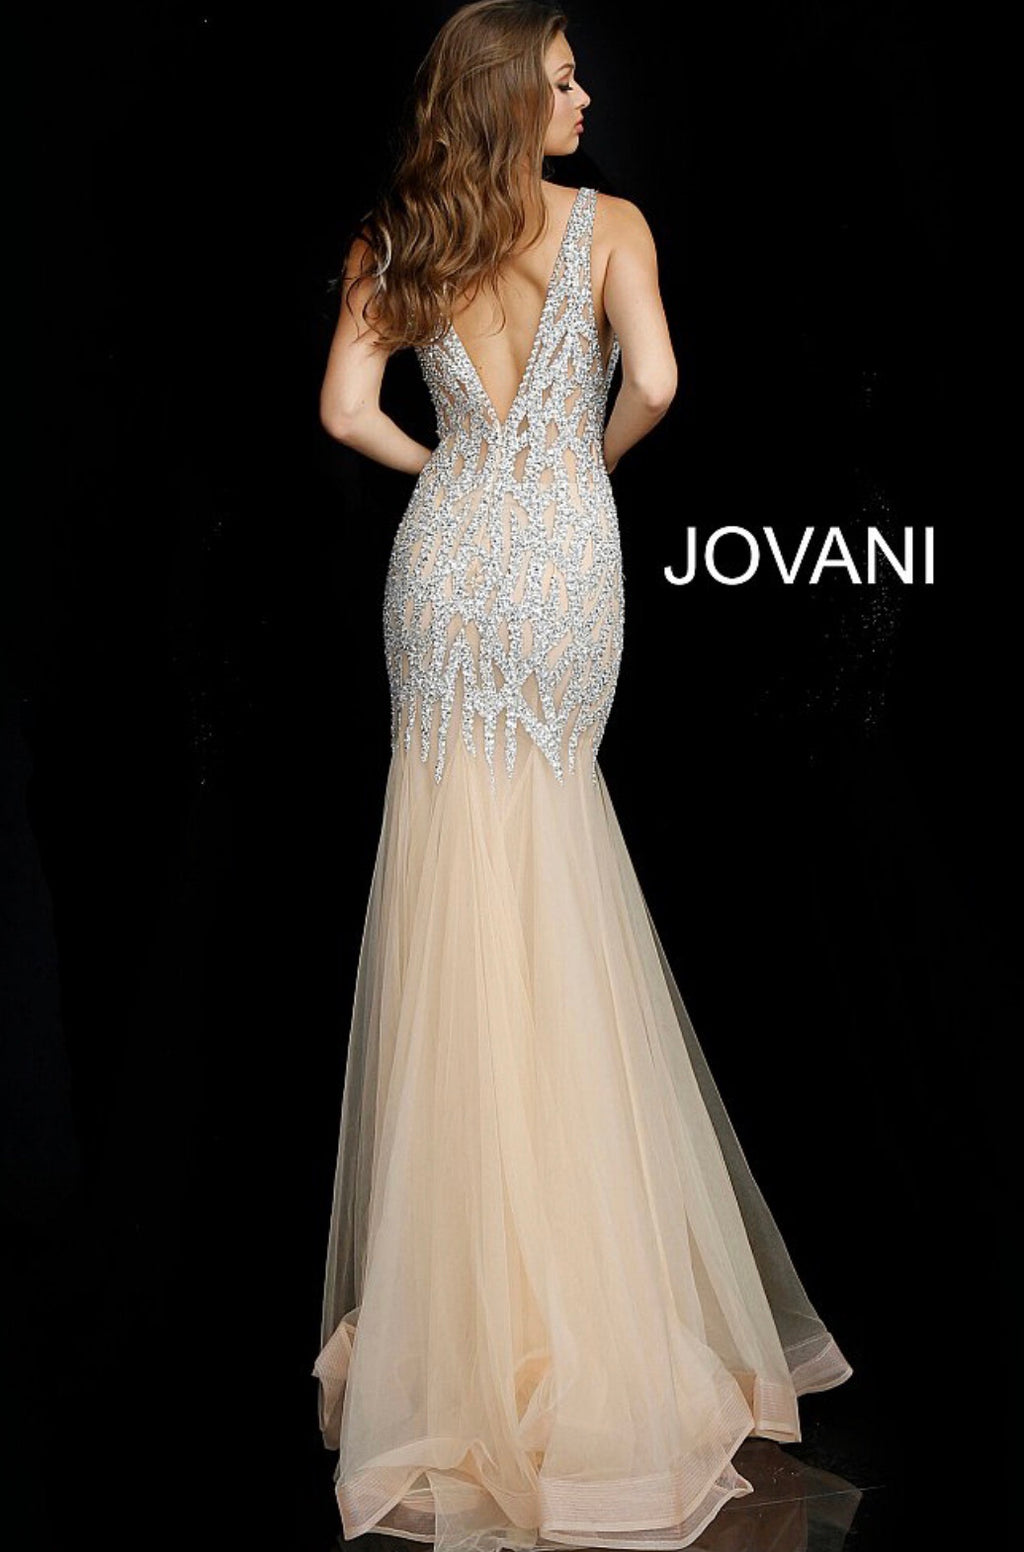 JOVANI 59717 Beaded Plunging Neckline Evening Dress - CYC Boutique